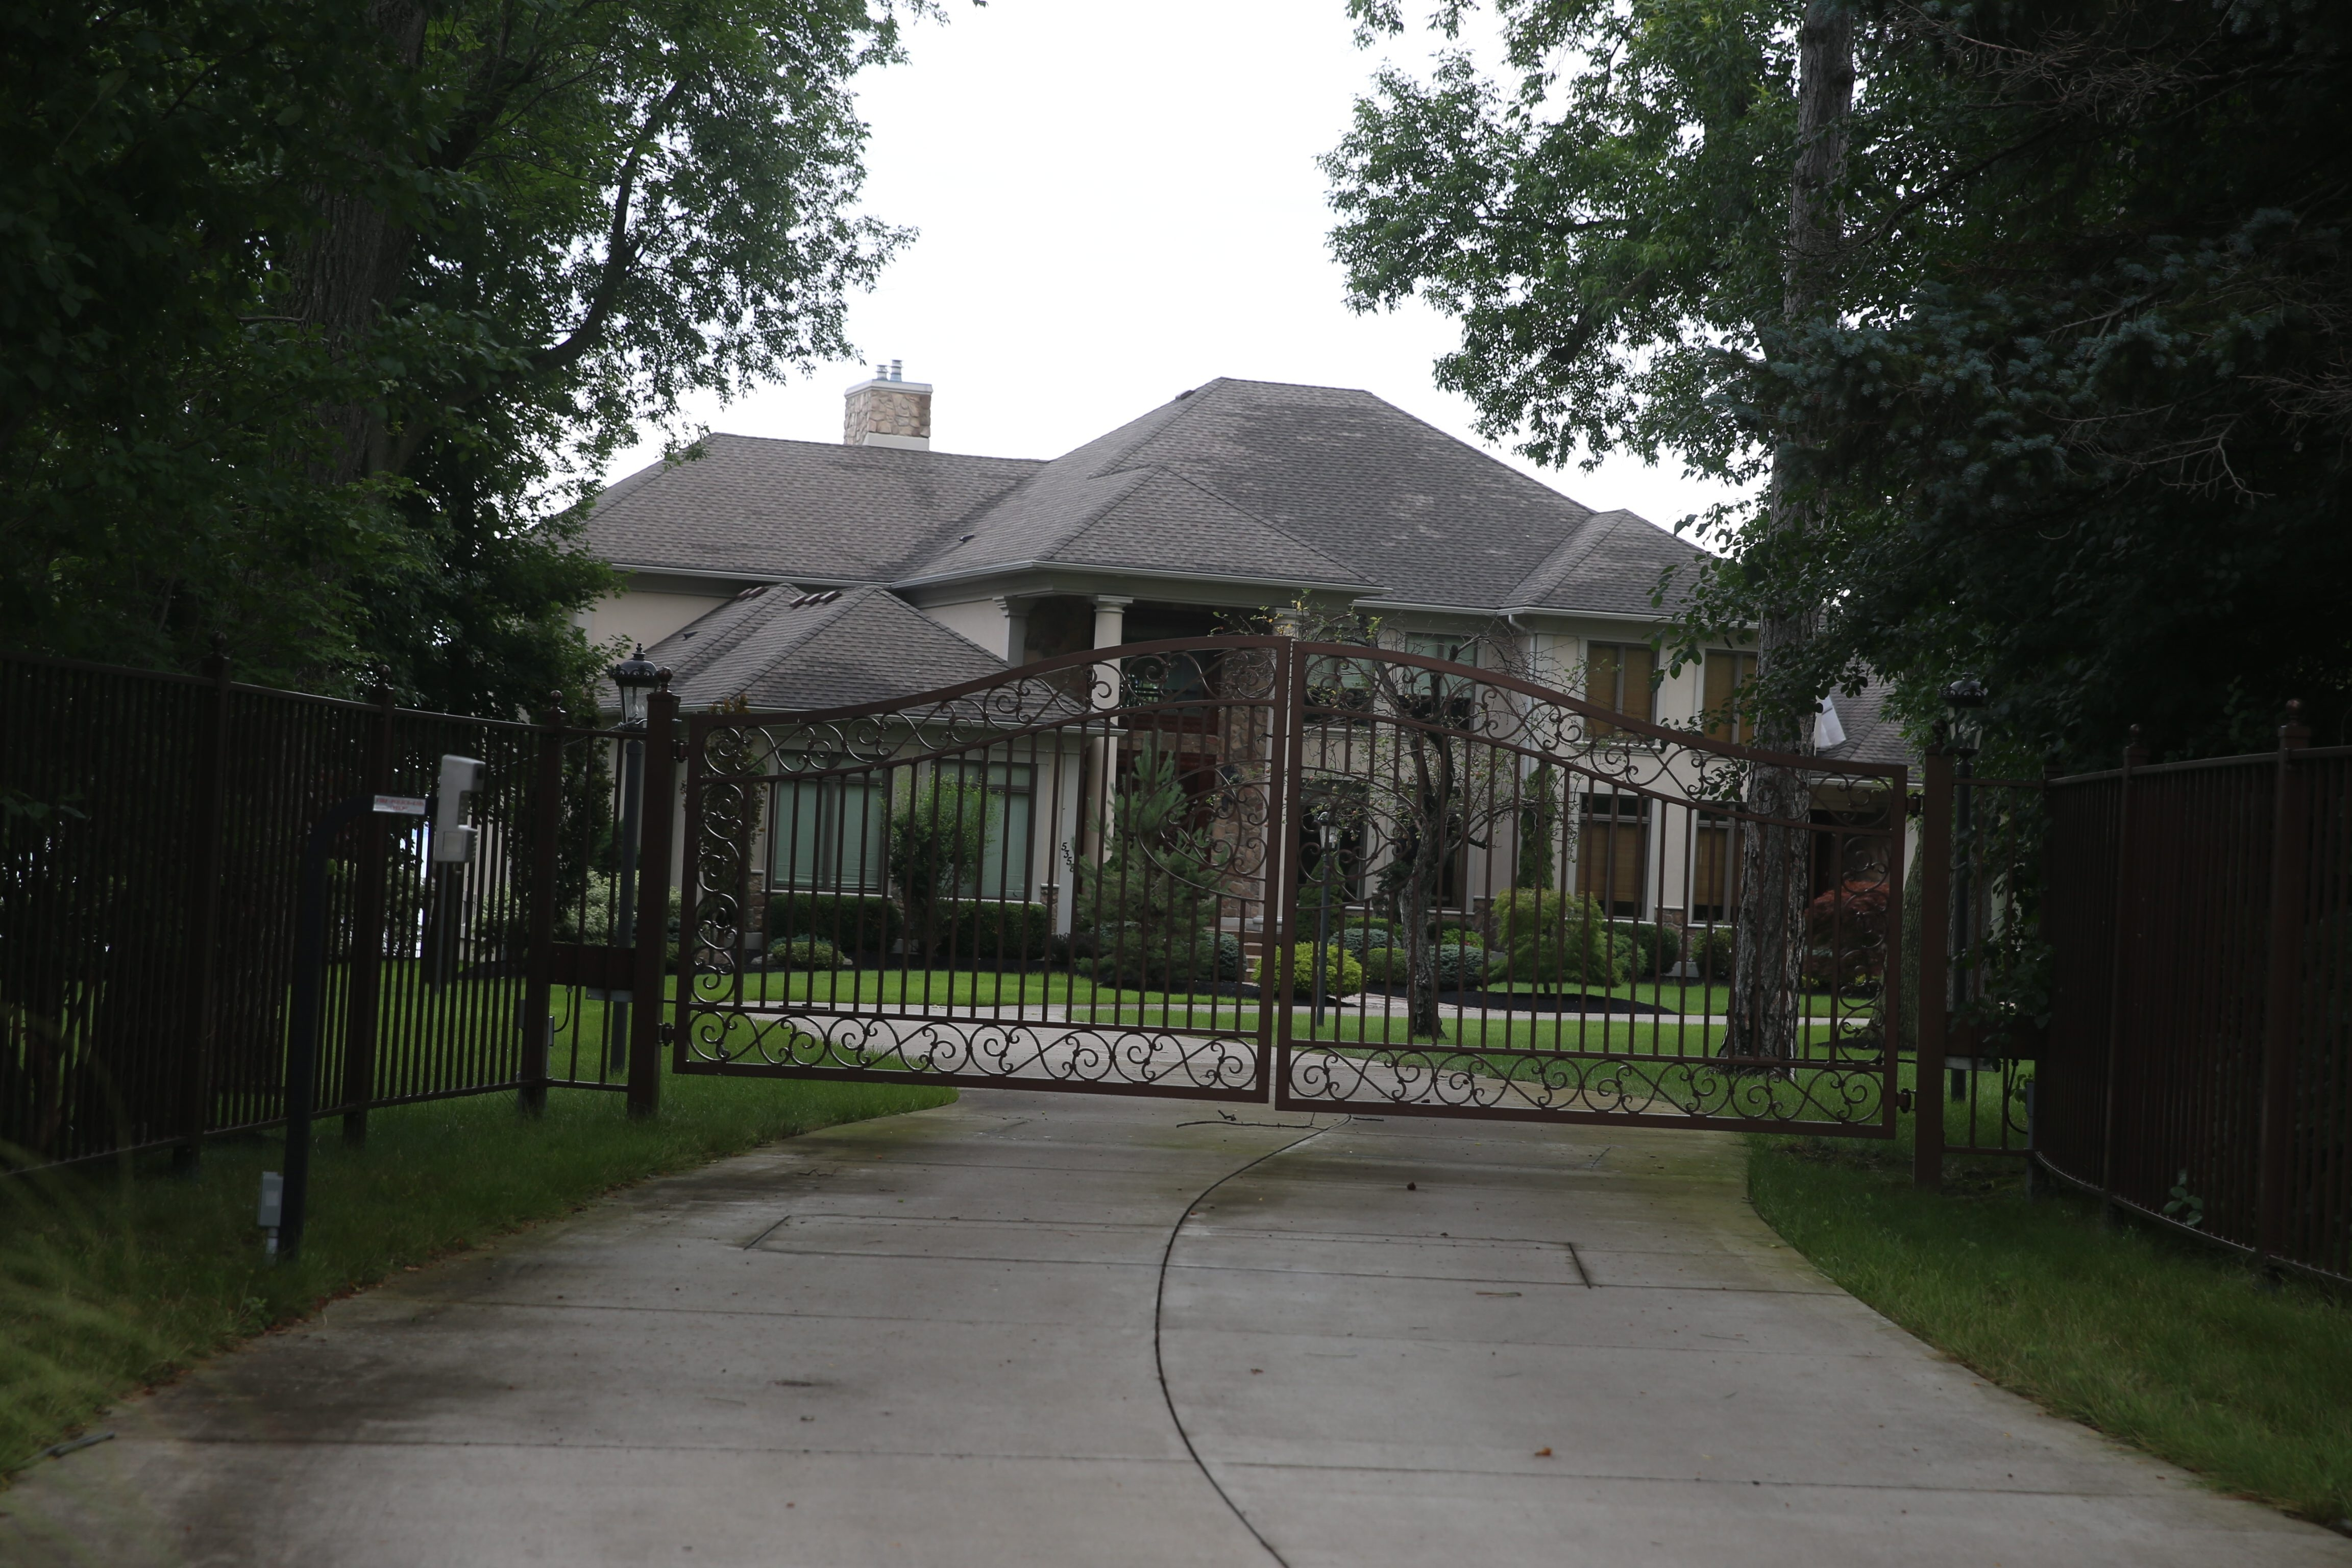 The alleged sexual assault took place in this home, owned by Patrick Kane, at 5358 Old Lake Shore Road in Lakeview.